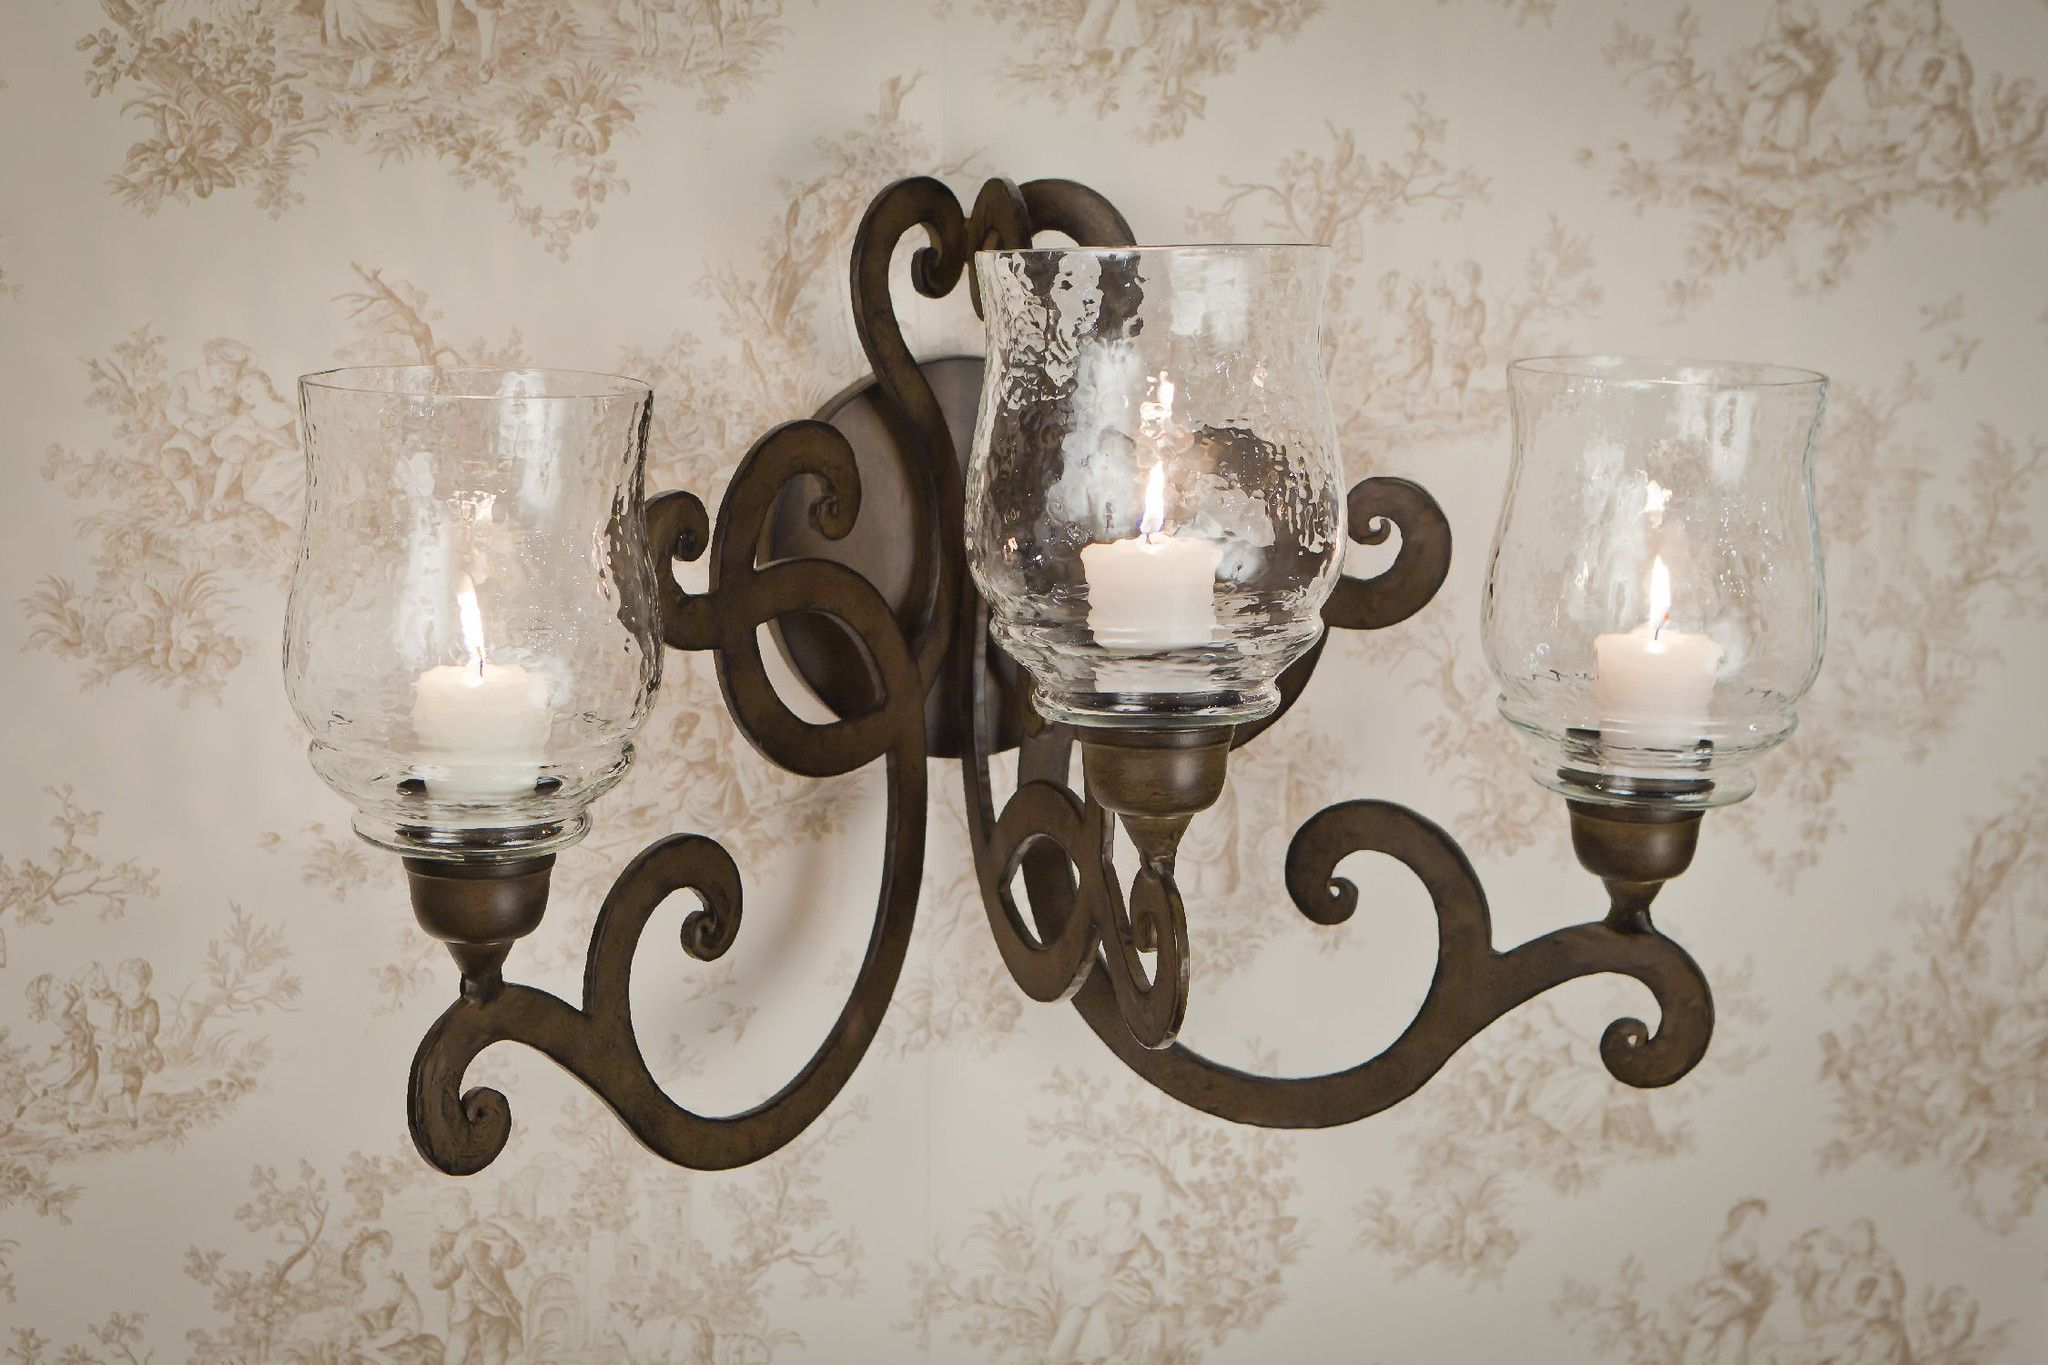 Bronze 3 Lite Scroll Wall Sconce Me2283  Products Sconces And Stunning Candle Wall Sconces For Dining Room 2018